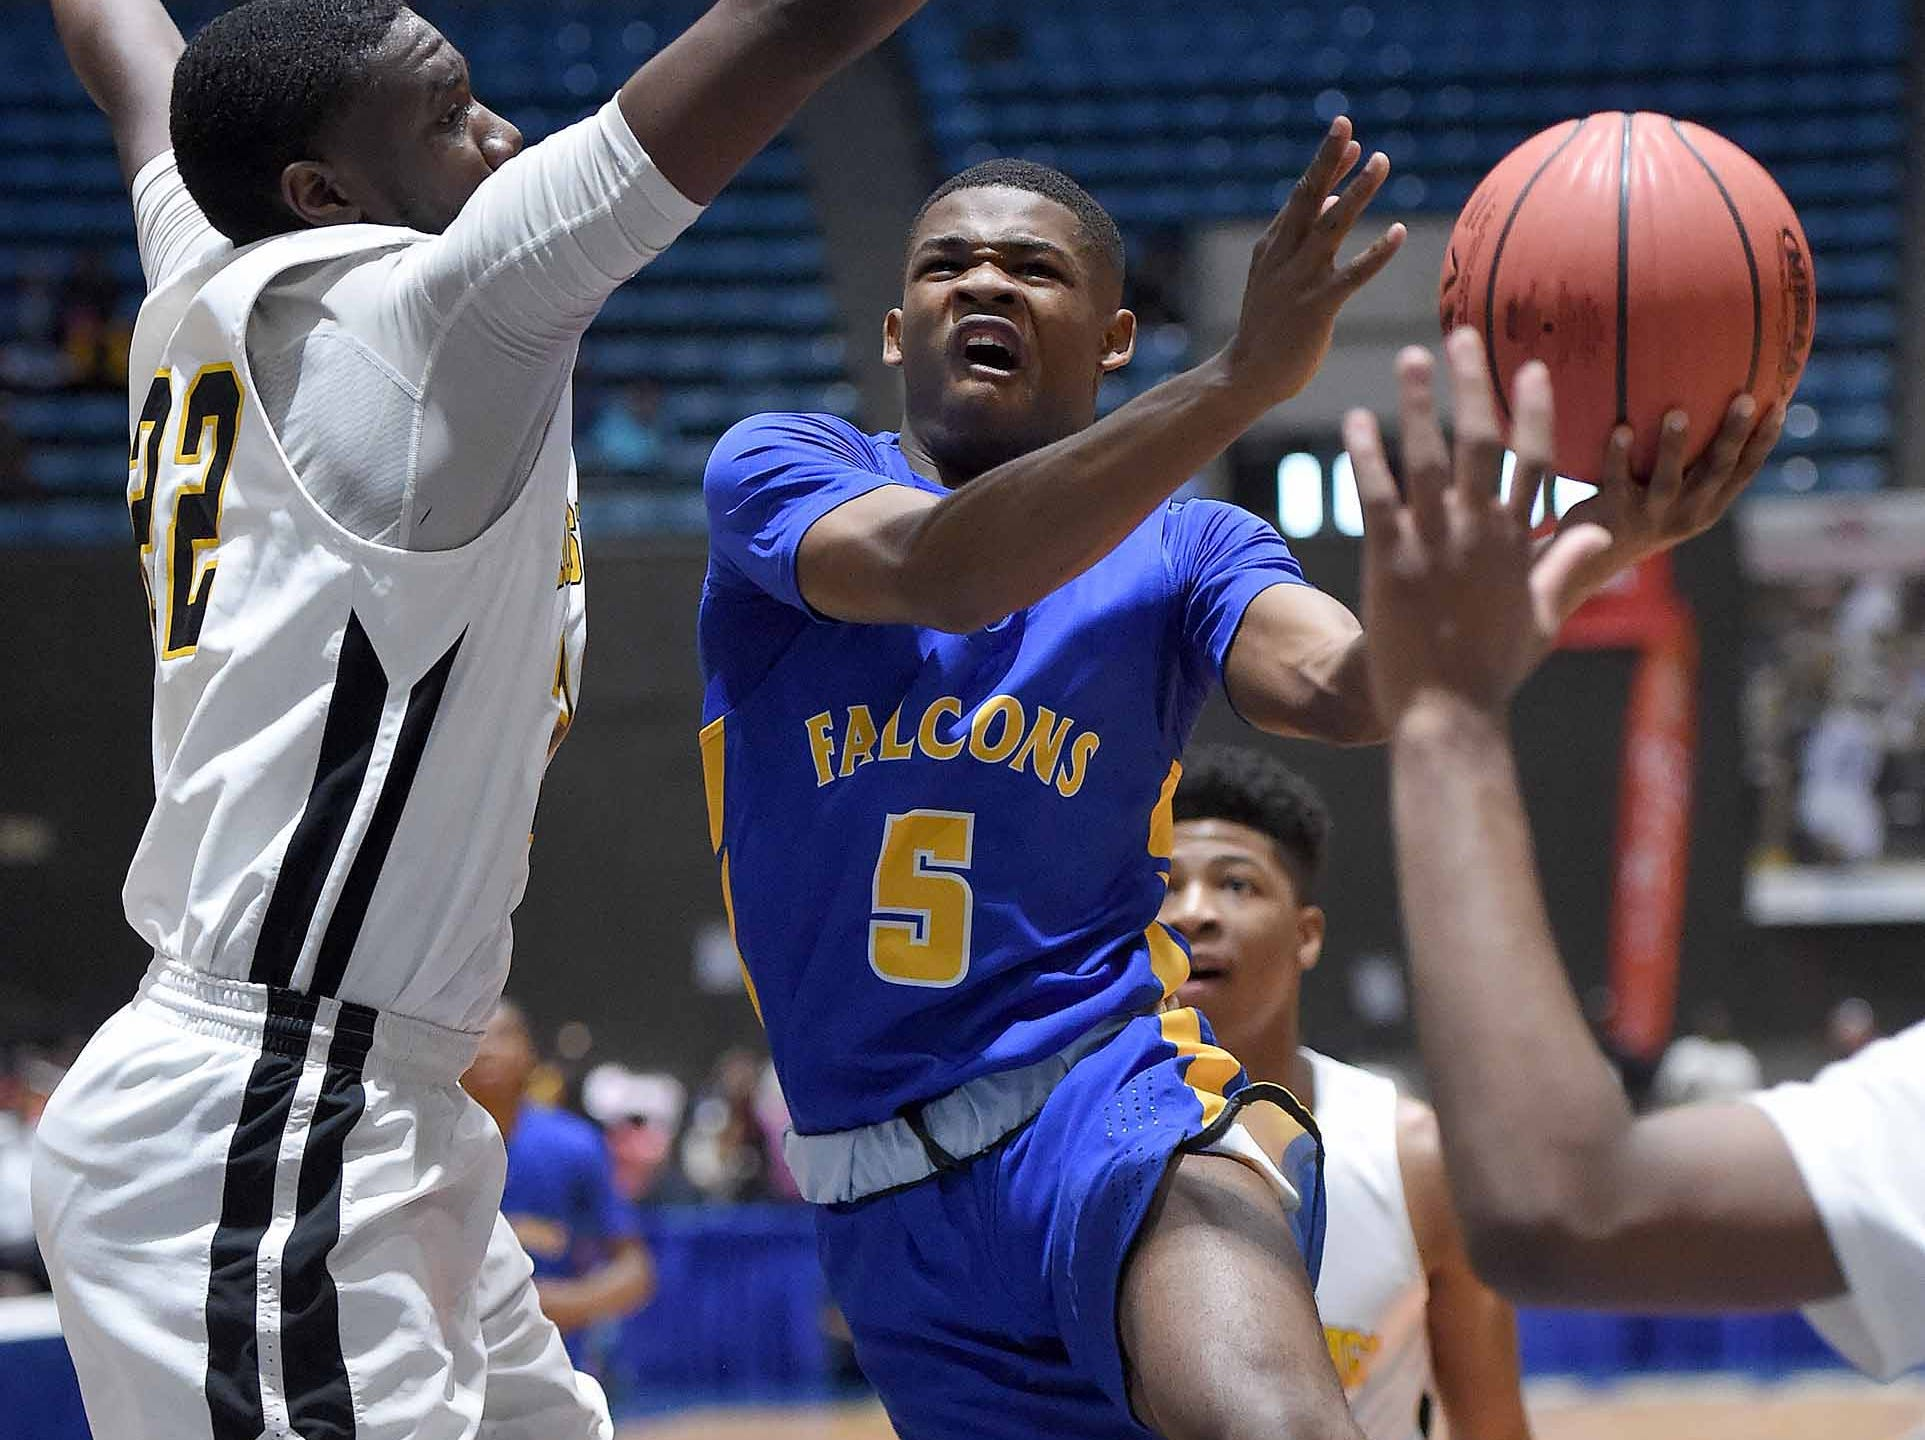 Velma Jackson's Carlton Beamon (5) drives the lane against Holly Springs in the finals of the MHSAA C Spire State Basketball Championships at the Mississippi Coliseum in Jackson, Miss., on Saturday, March 9, 2019.